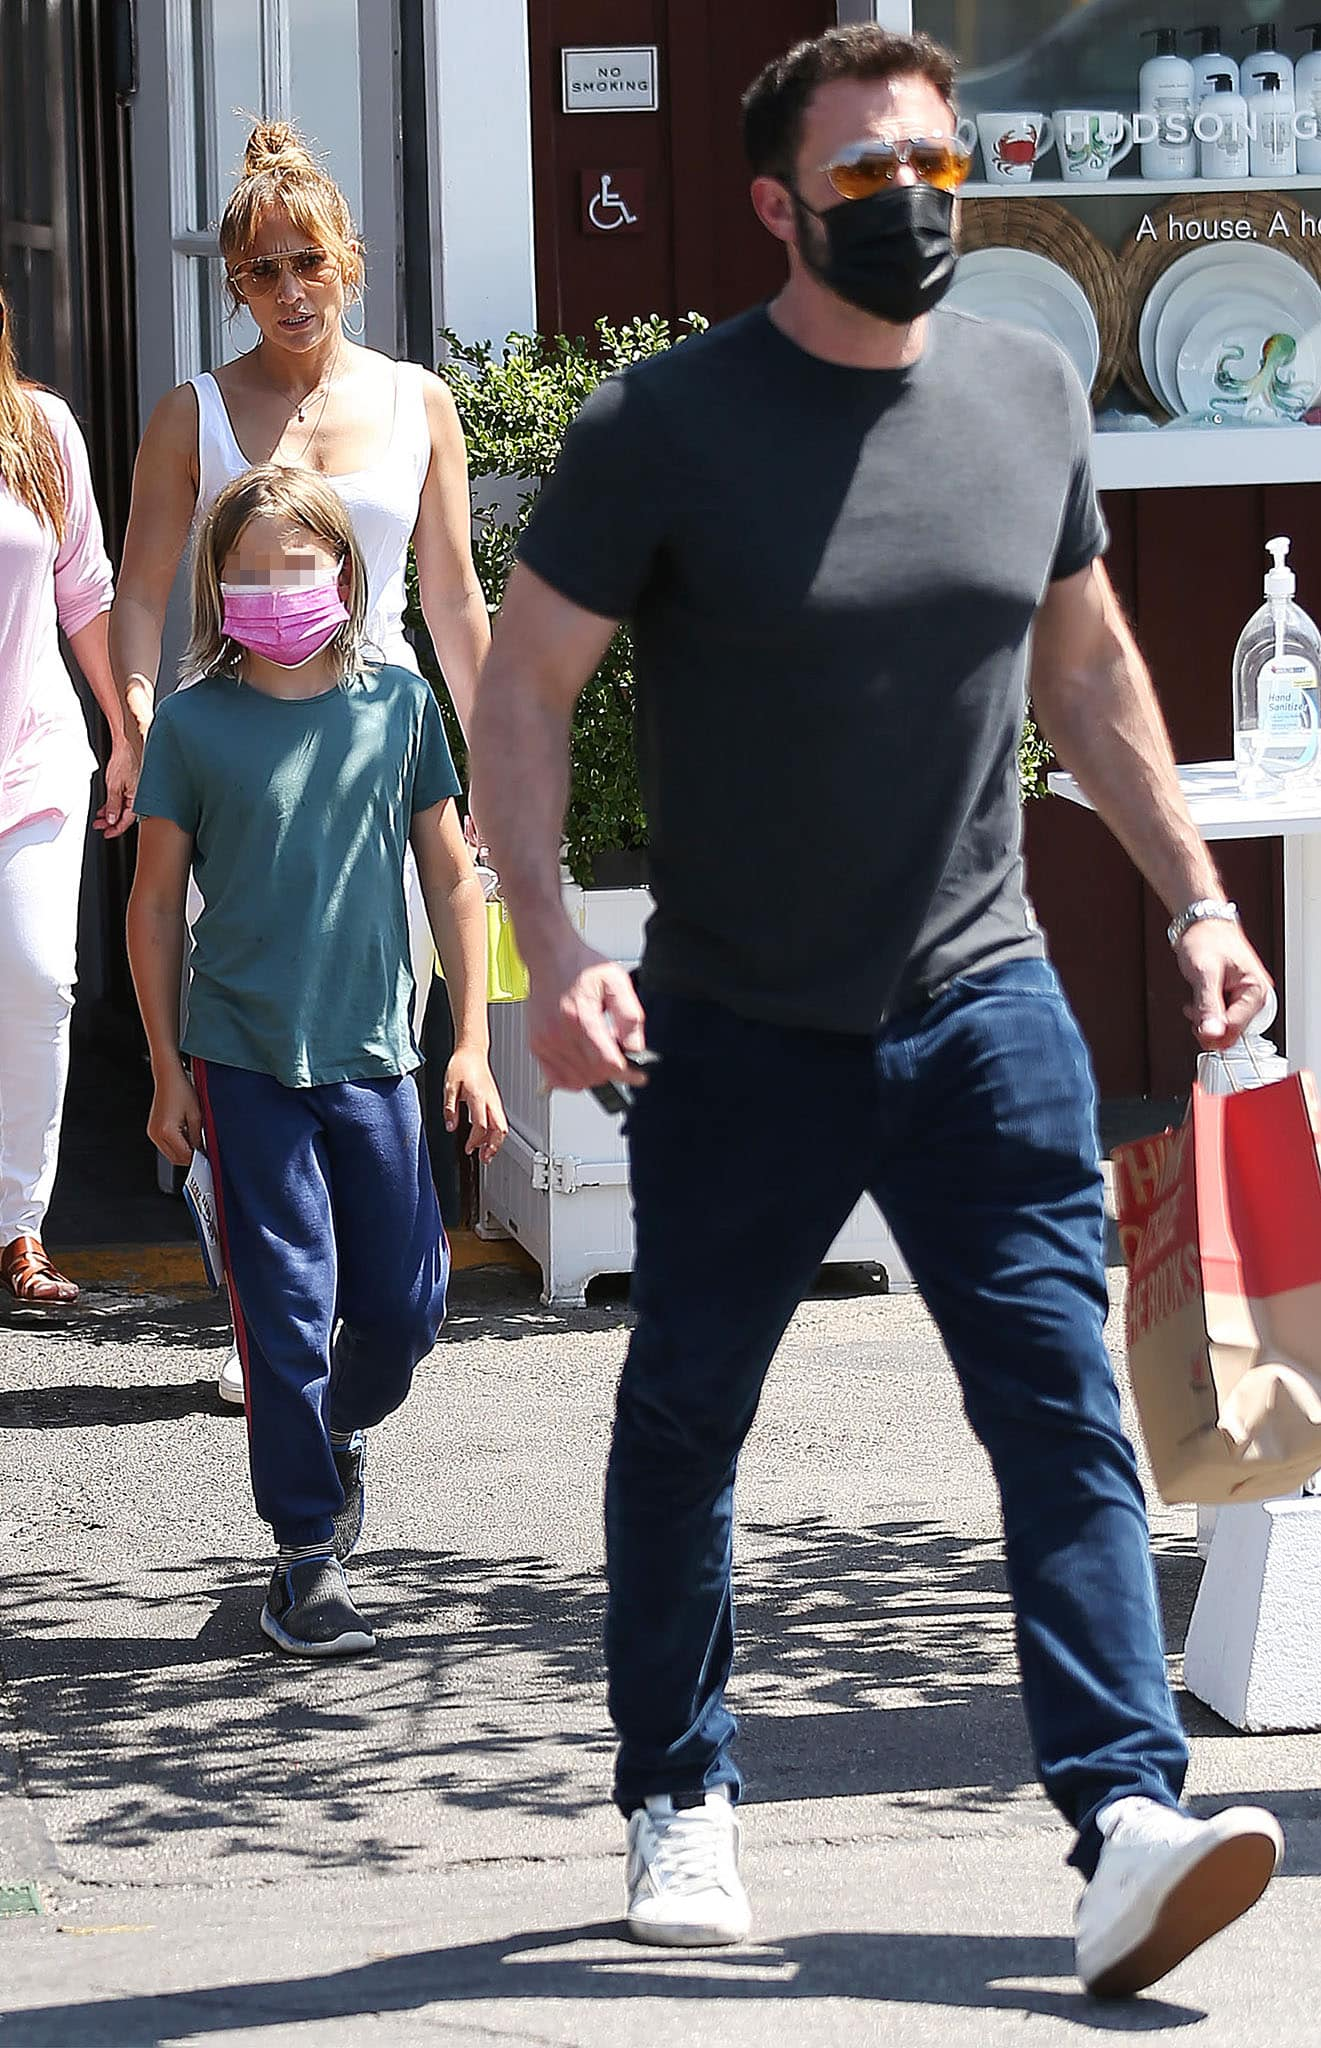 Ben Affleck and his son, Samuel, both opt for plain t-shirts with blue pants